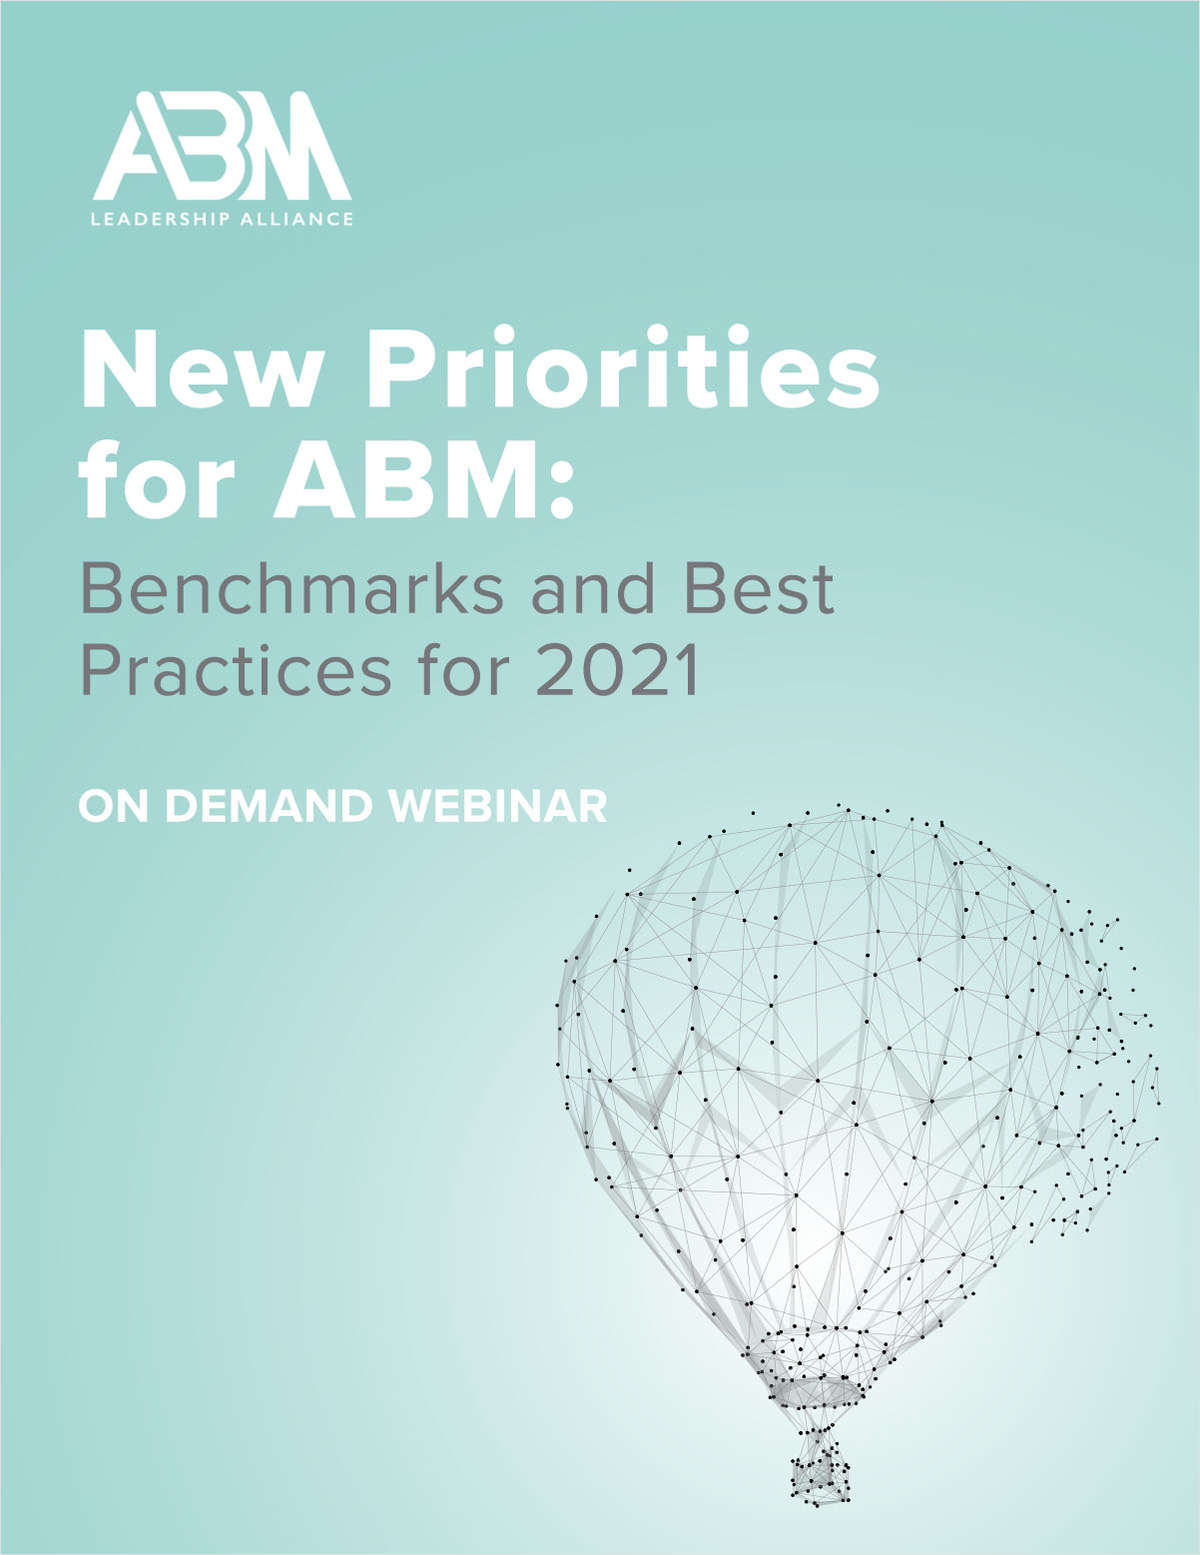 New Priorities for ABM: Benchmarks and Best Practices for 2021